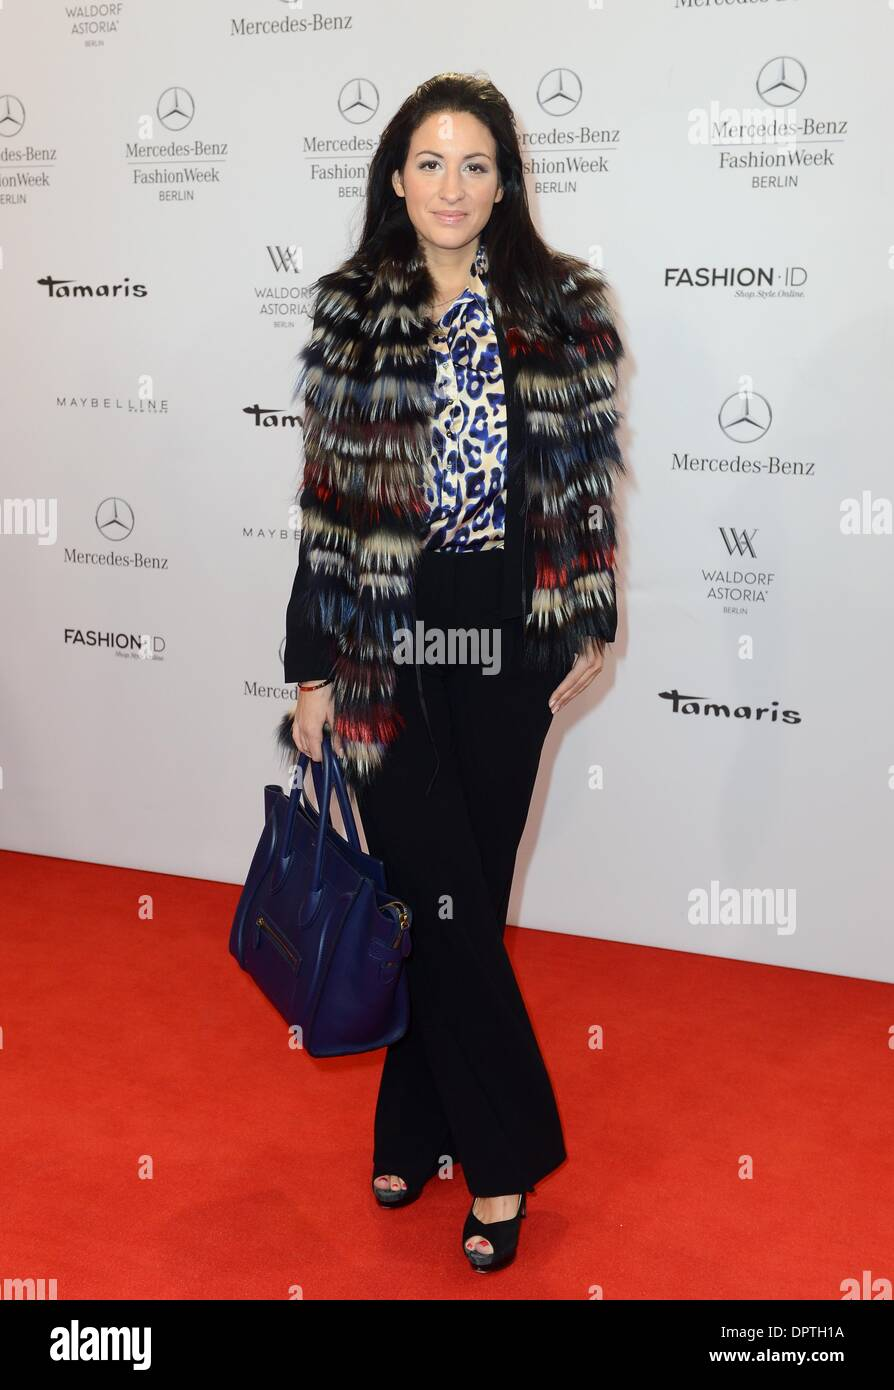 Berlin, Germany. 16th Jan, 2014. Producer Minu Barati-Fischer arrives for the fashion show of the label Laurel at Mercedes-Benz Fashion Week in Berlin, Germany, 16 January 2014. Creations from the 2014/15 autumn/winter collection are being presented at Berlin Fashion Week. Photo: BRITTA PEDERSEN/dpa/Alamy Live News - Stock Image